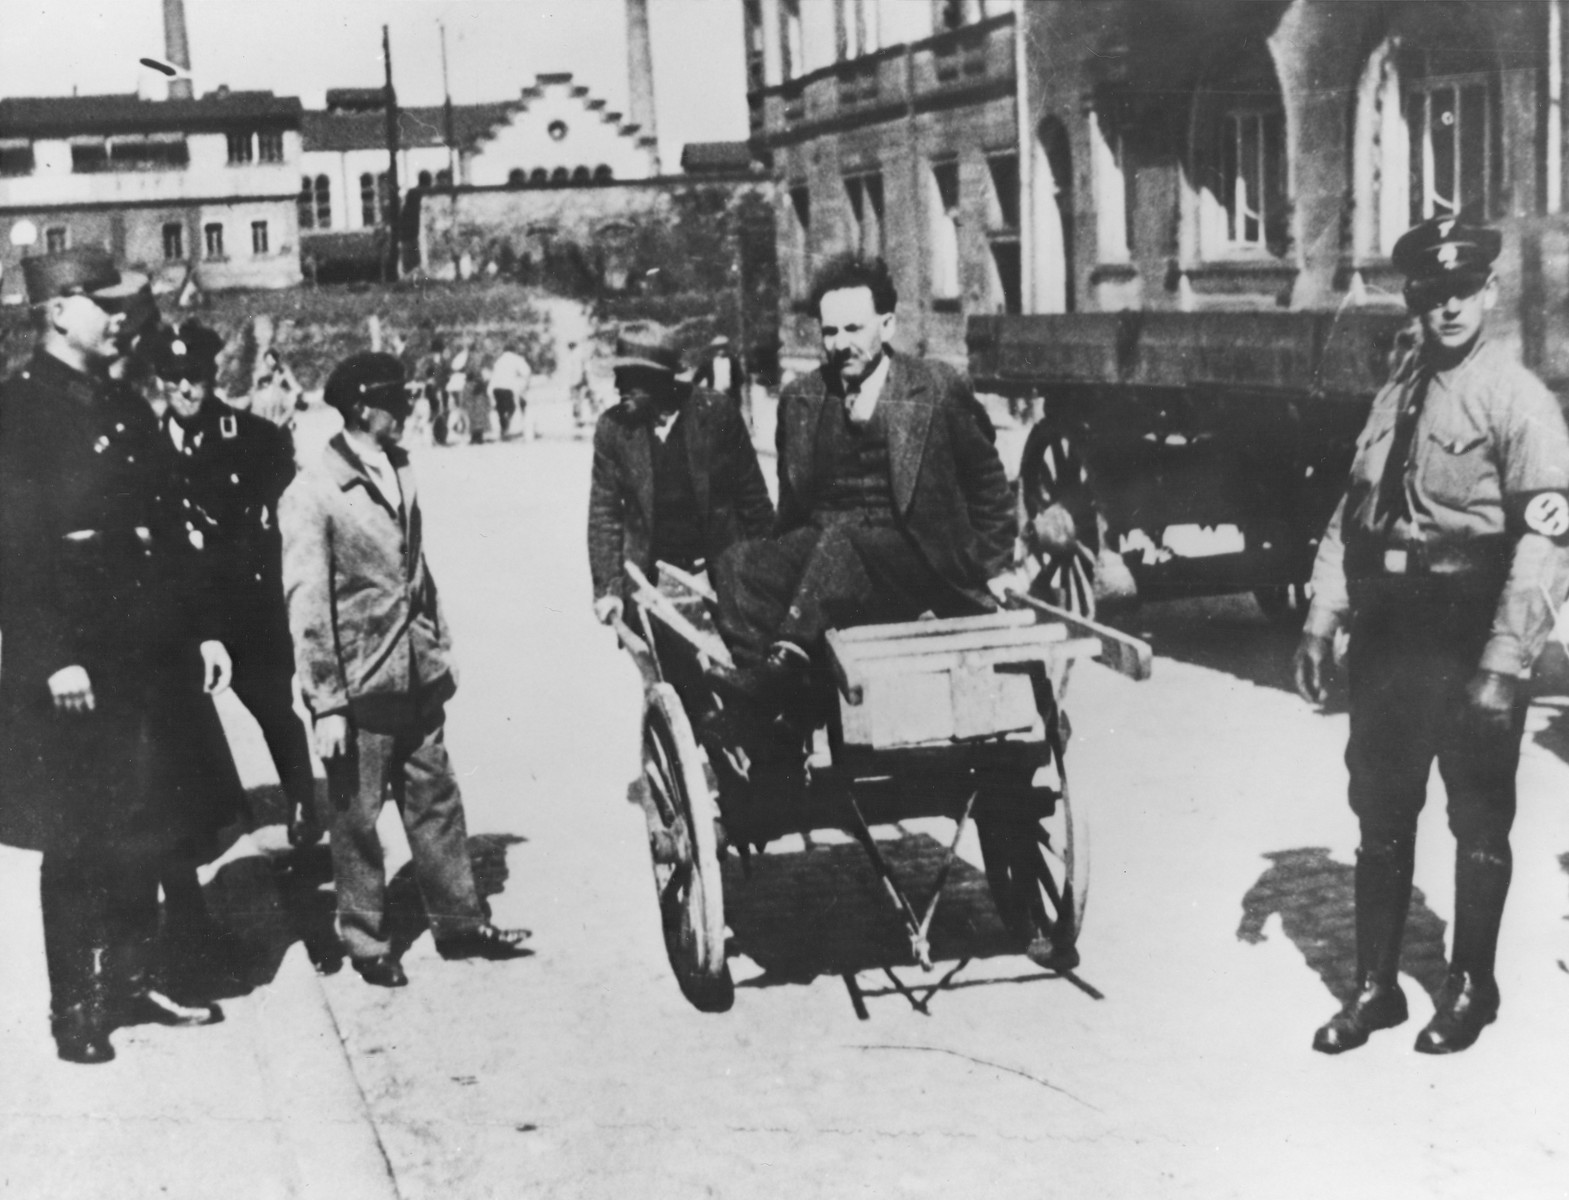 SS men publicly humiliate an unidentified man by wheeling him  through the streets in a cart filled with dirt from street cleaning.